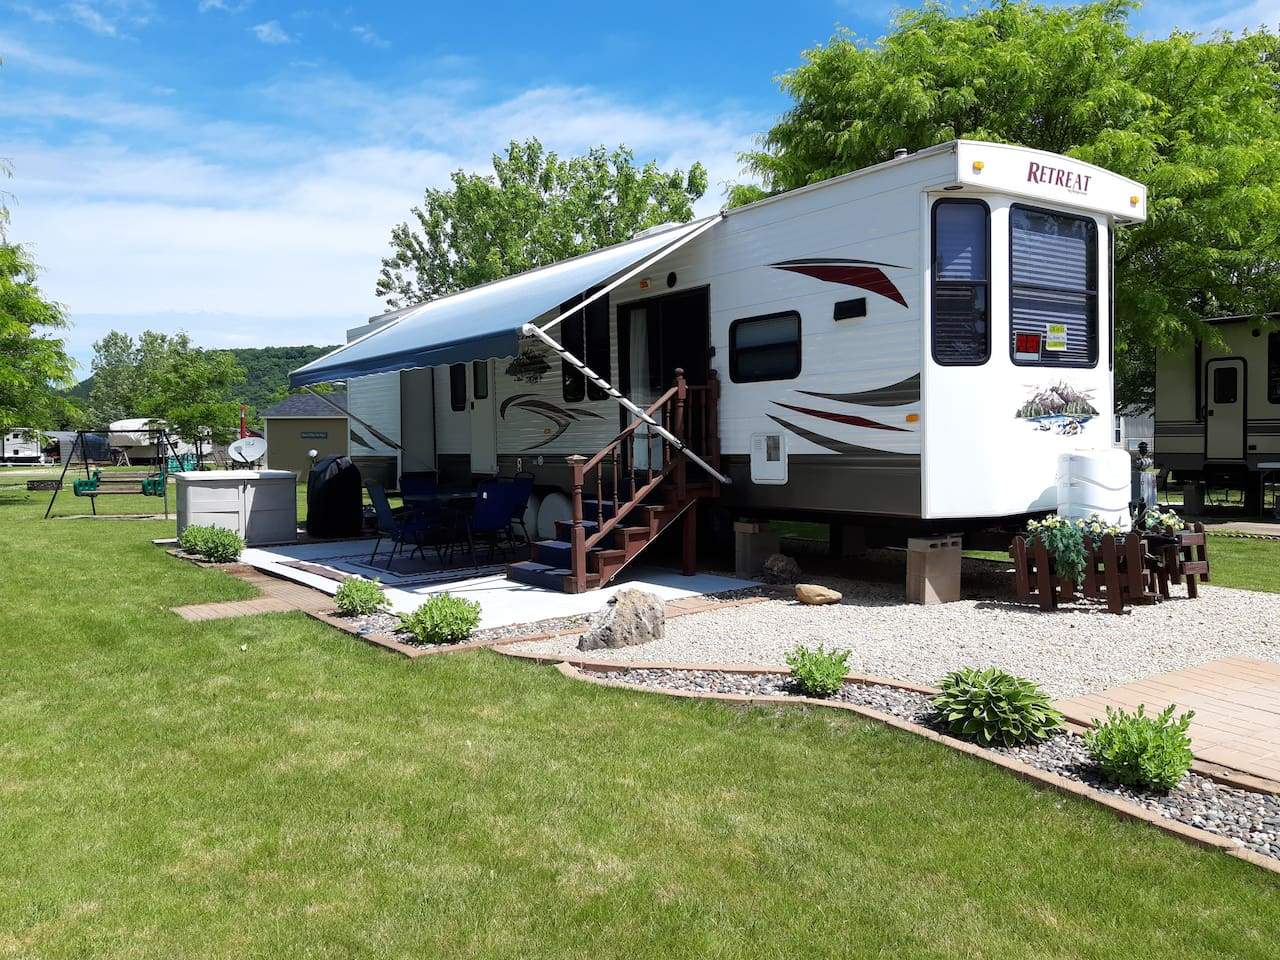 Open concept living area with a  separate bedroom and bathroom. Patio set under the awning, gas grill, fire pit in the yard, little porch with 2 chairs on the shed  and a yard swing.  Just bring clothes, food & firewood.